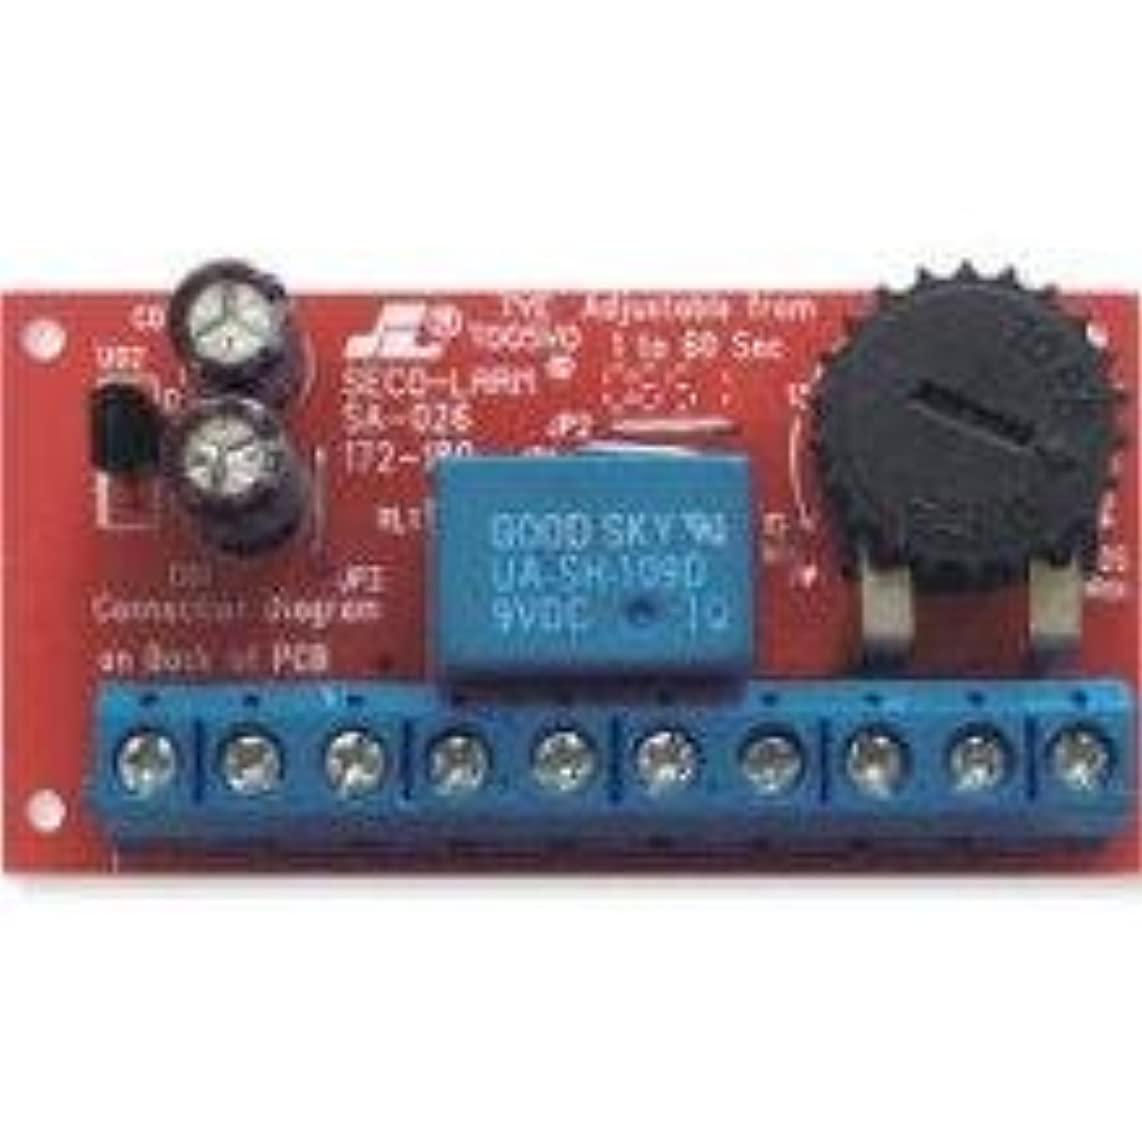 Seco-Larm Low Voltage Miniature Delay Time Module Includes Double-Sided Foam Tape